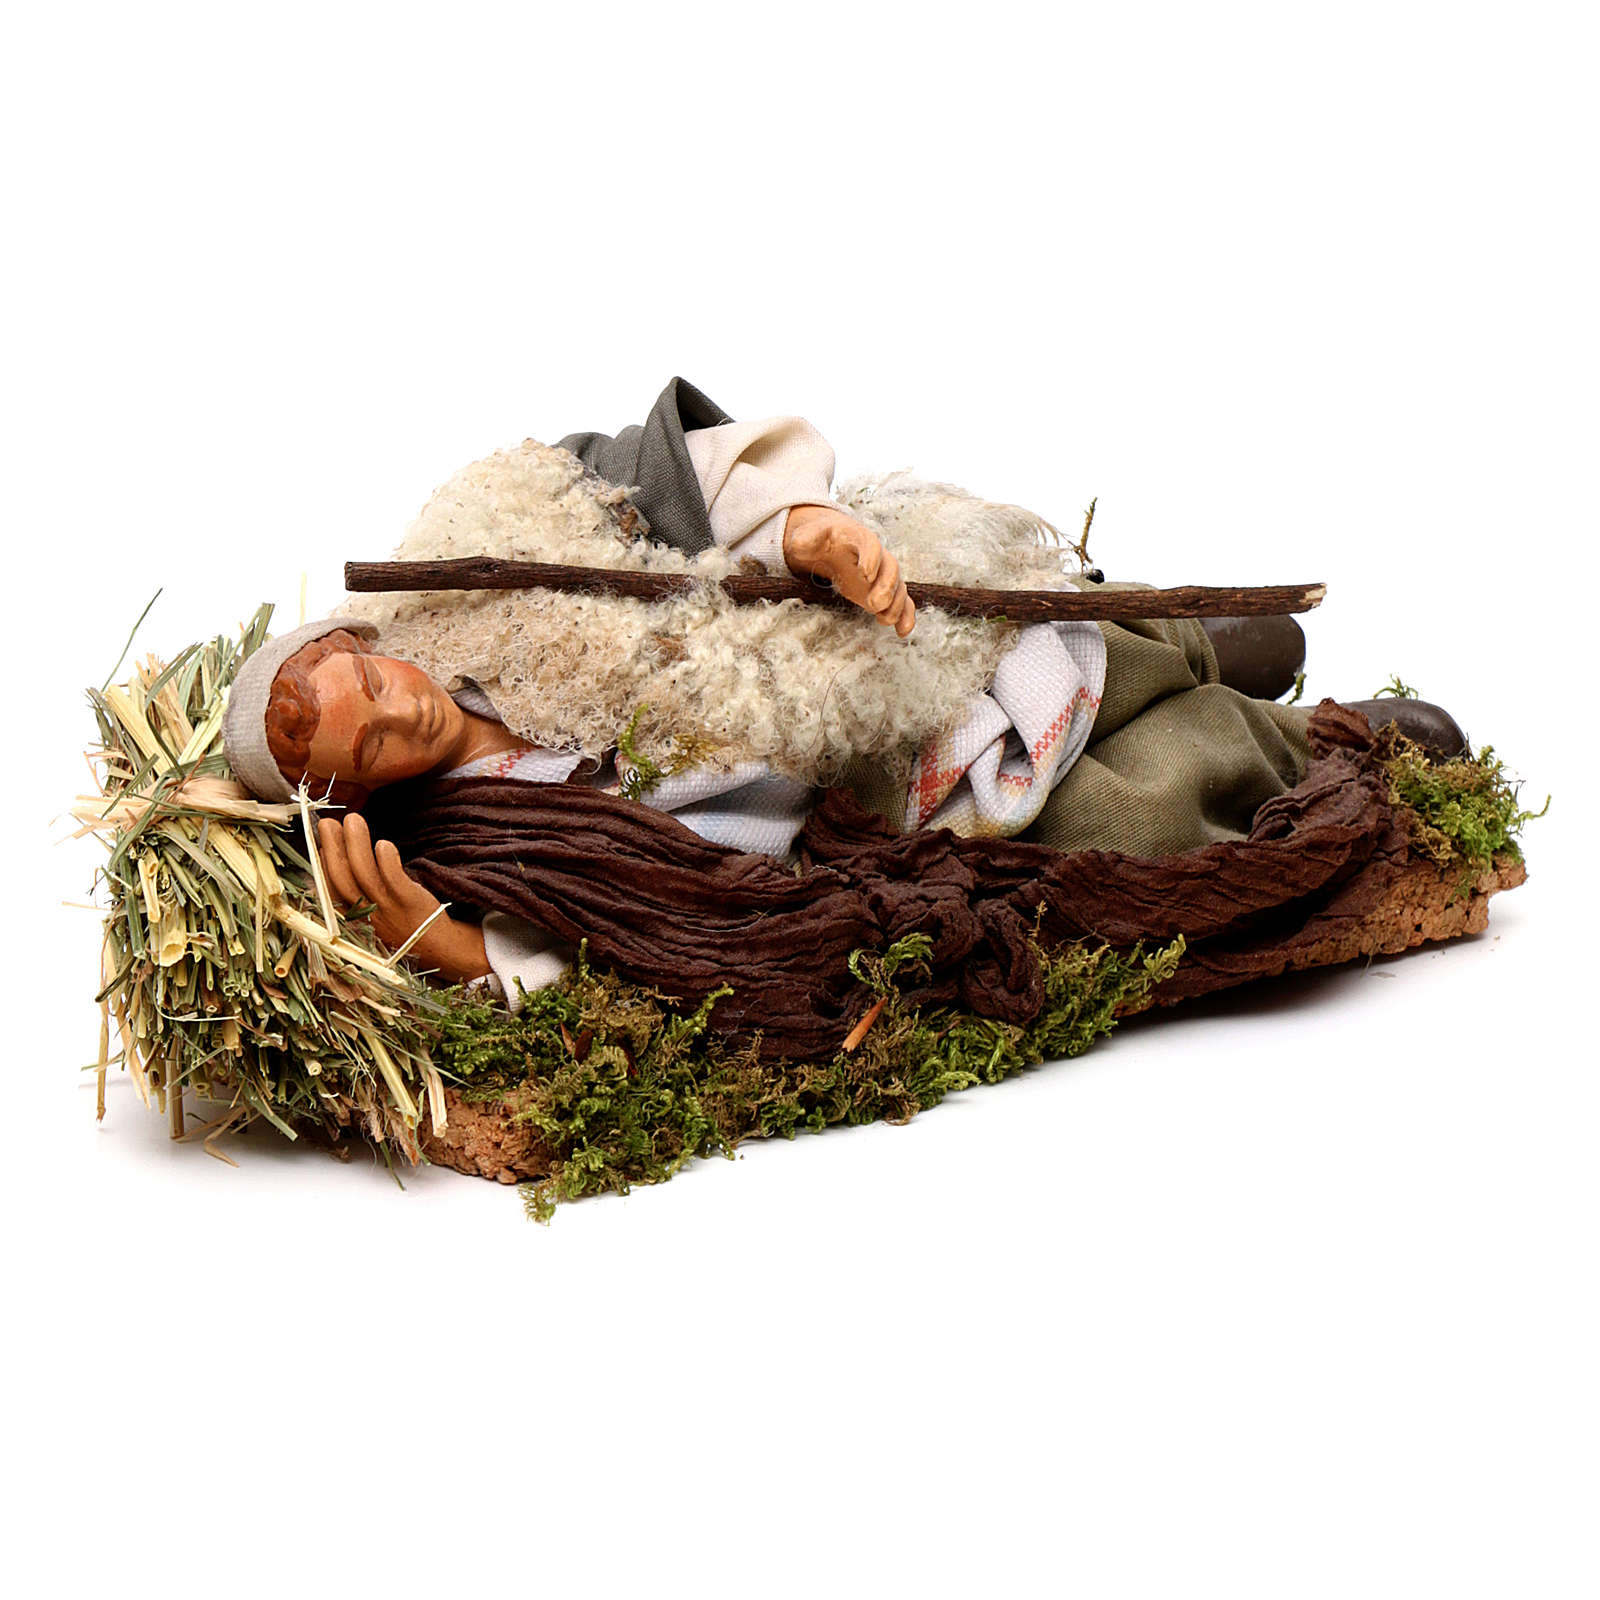 Neapolitan nativity figurine, sleeping man 18cm 4